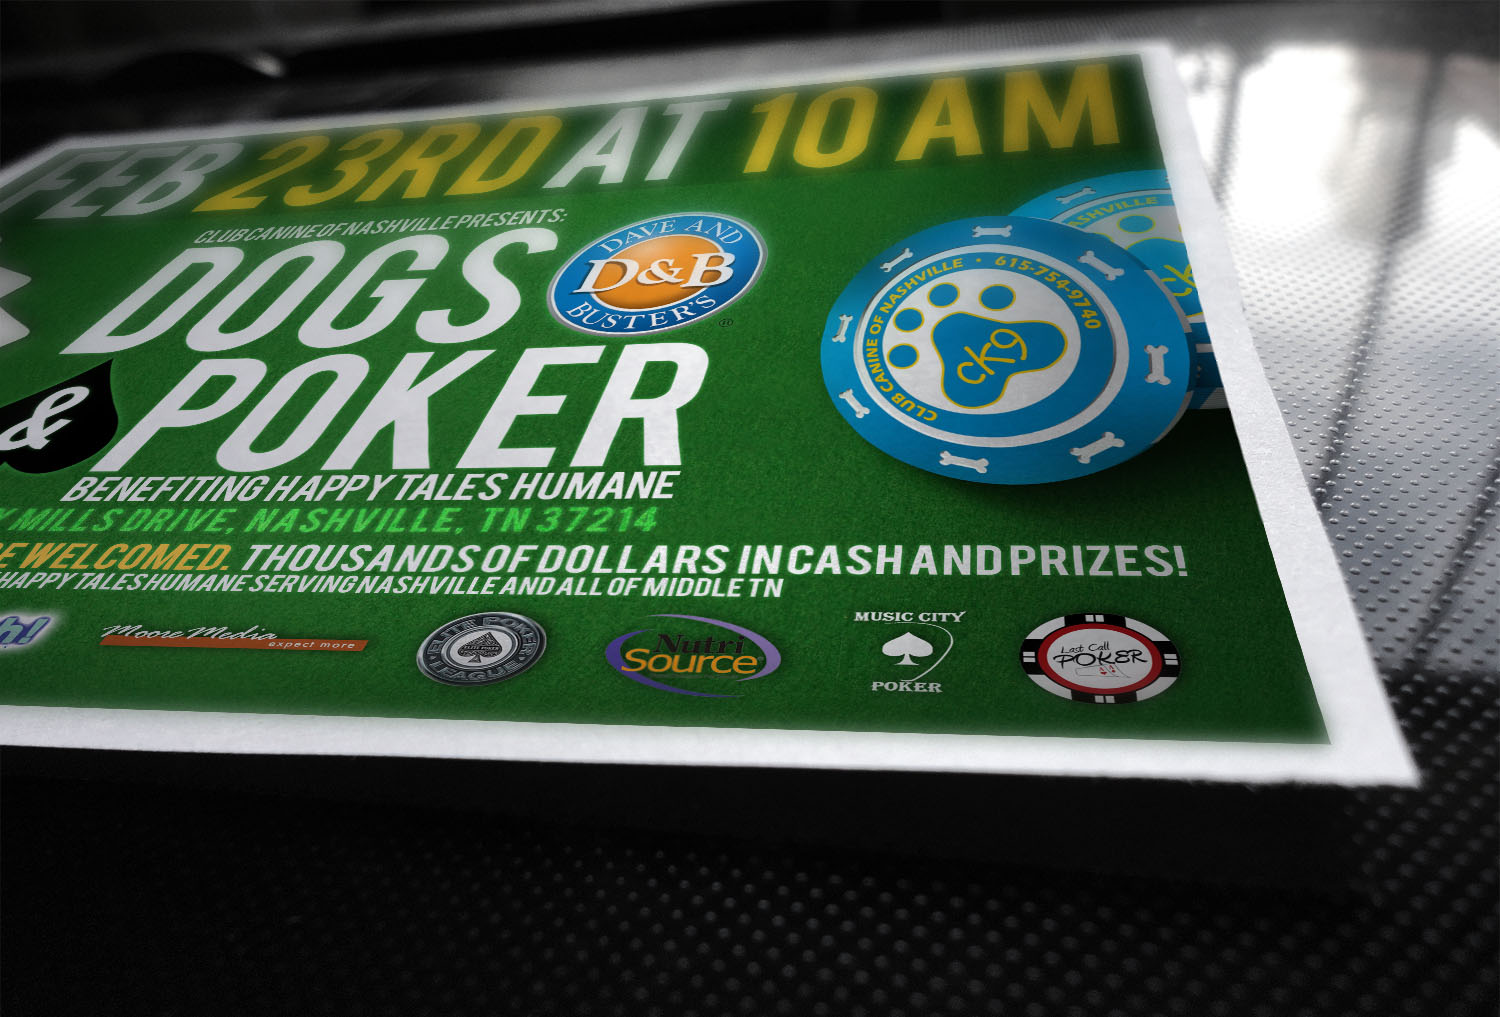 Dogs and Poker Flyer